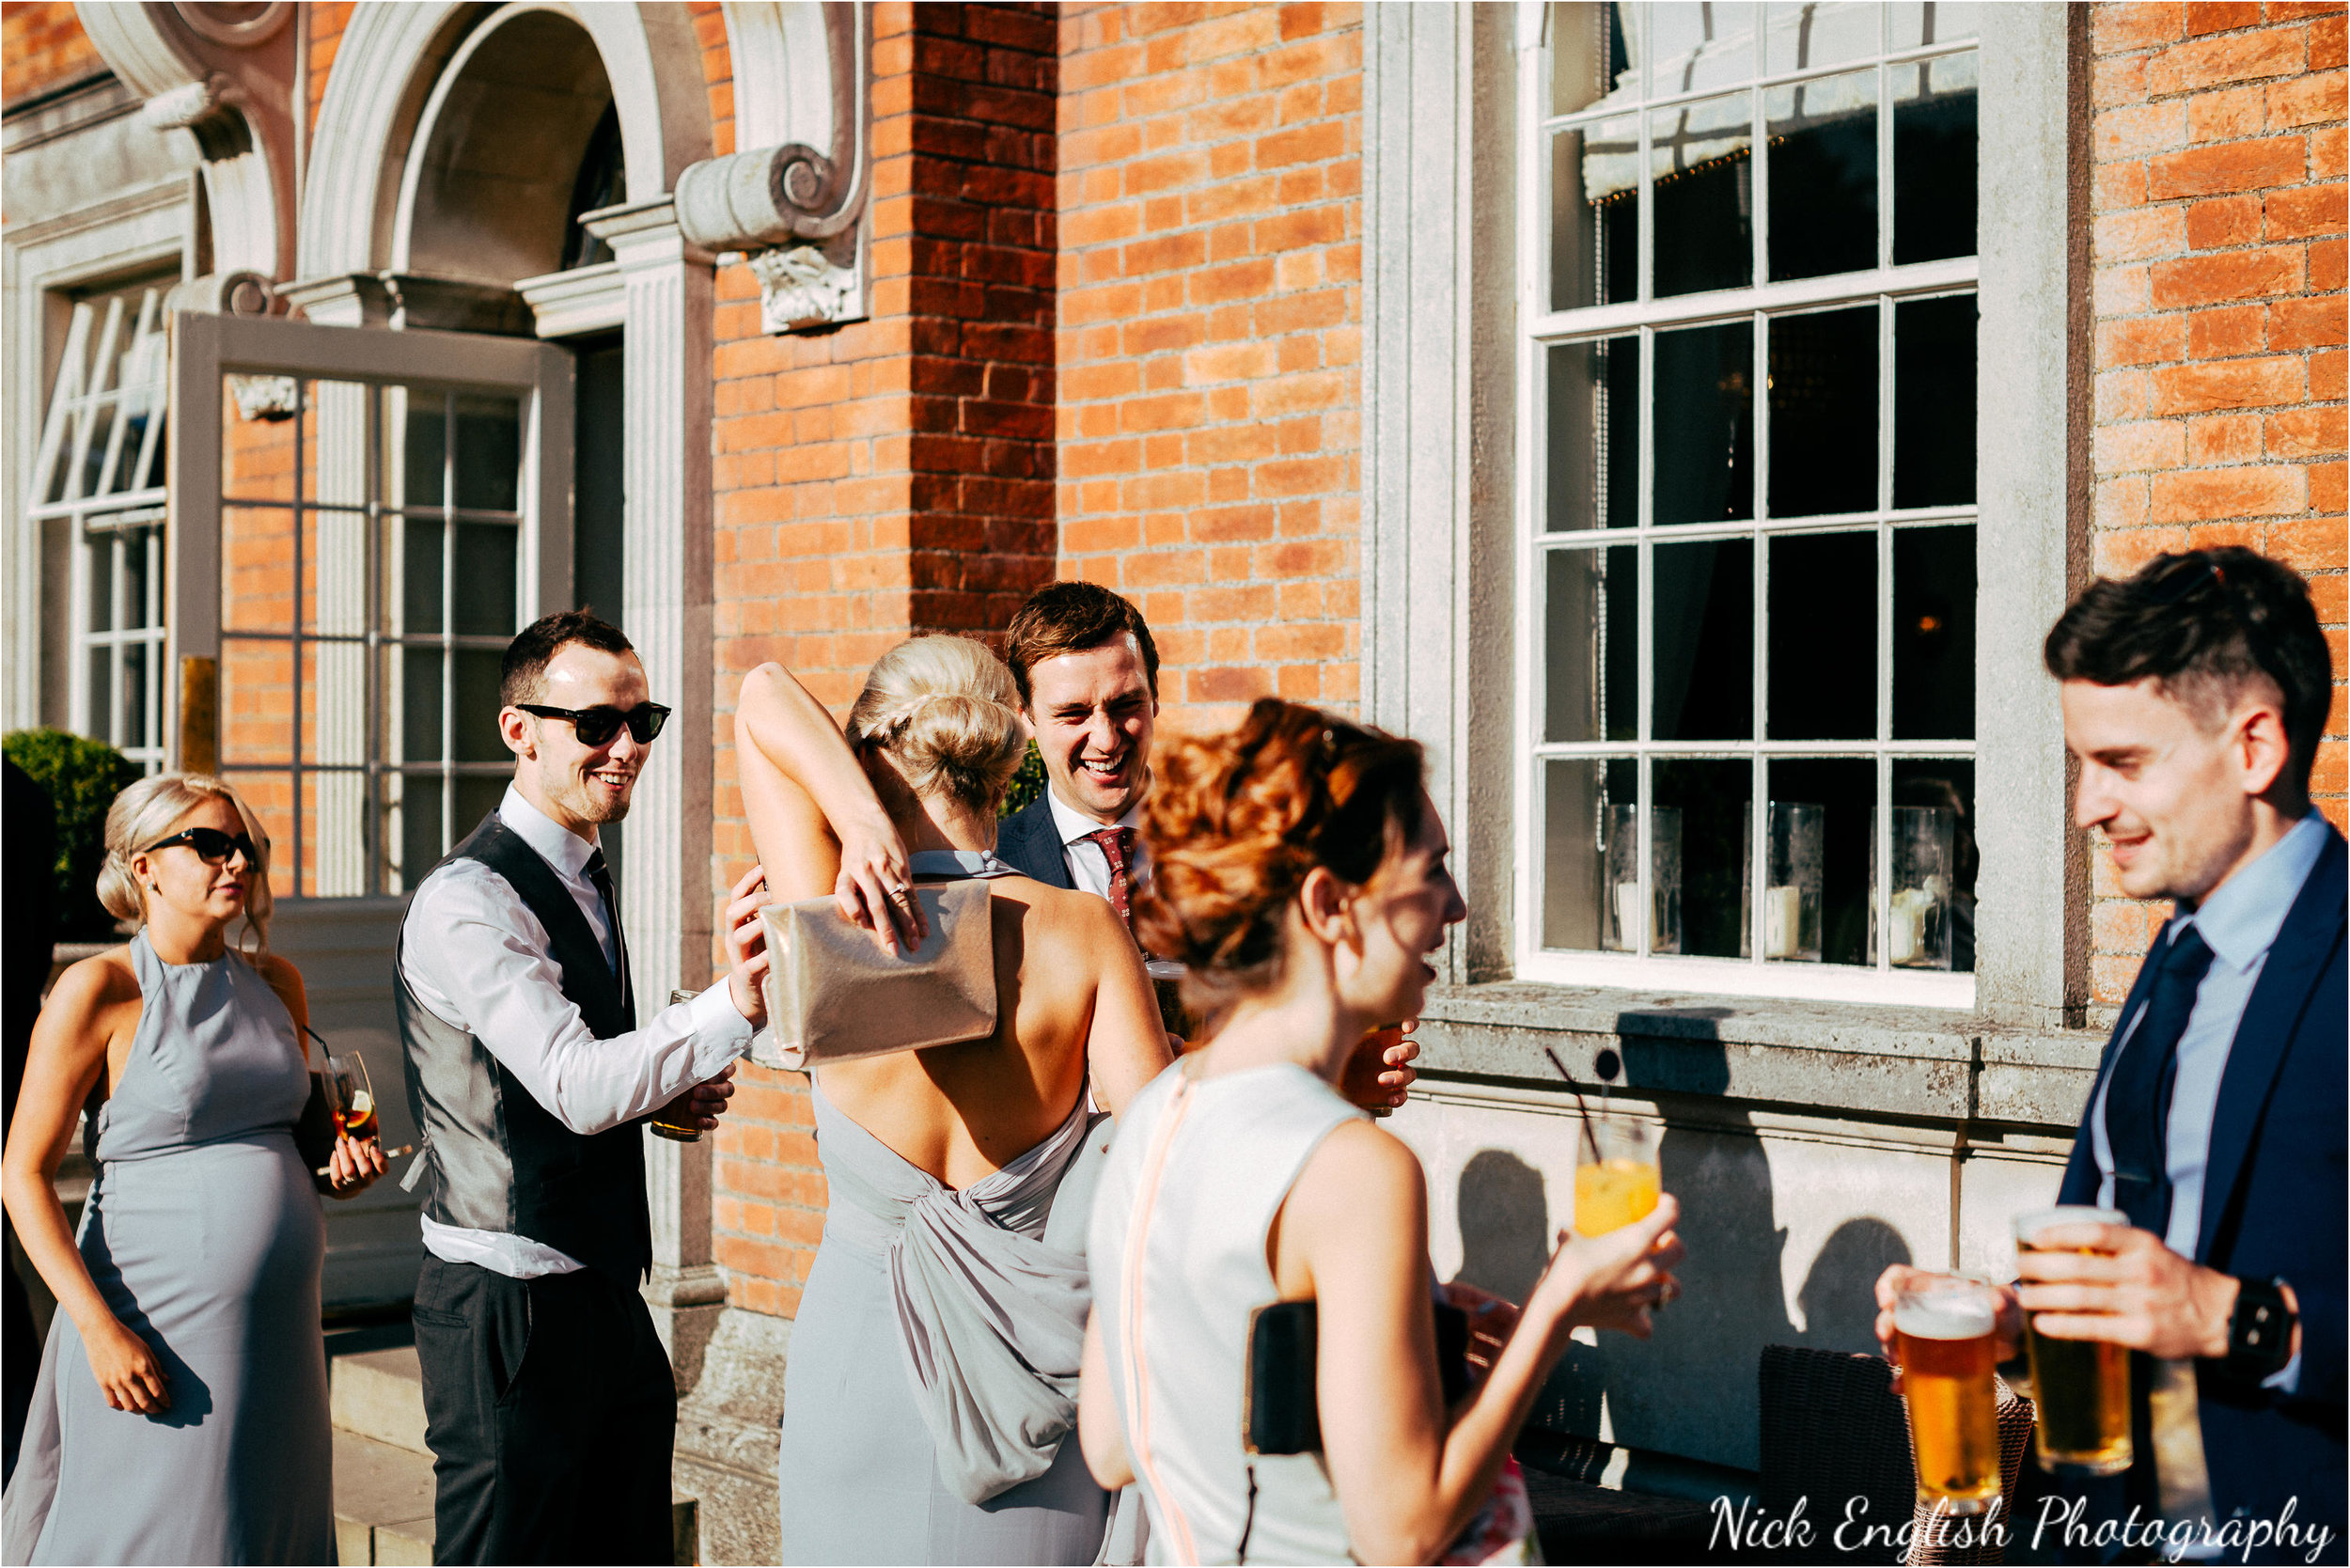 Eaves_Hall_Wedding_Photographs_Nick_English_Photography-160.jpg